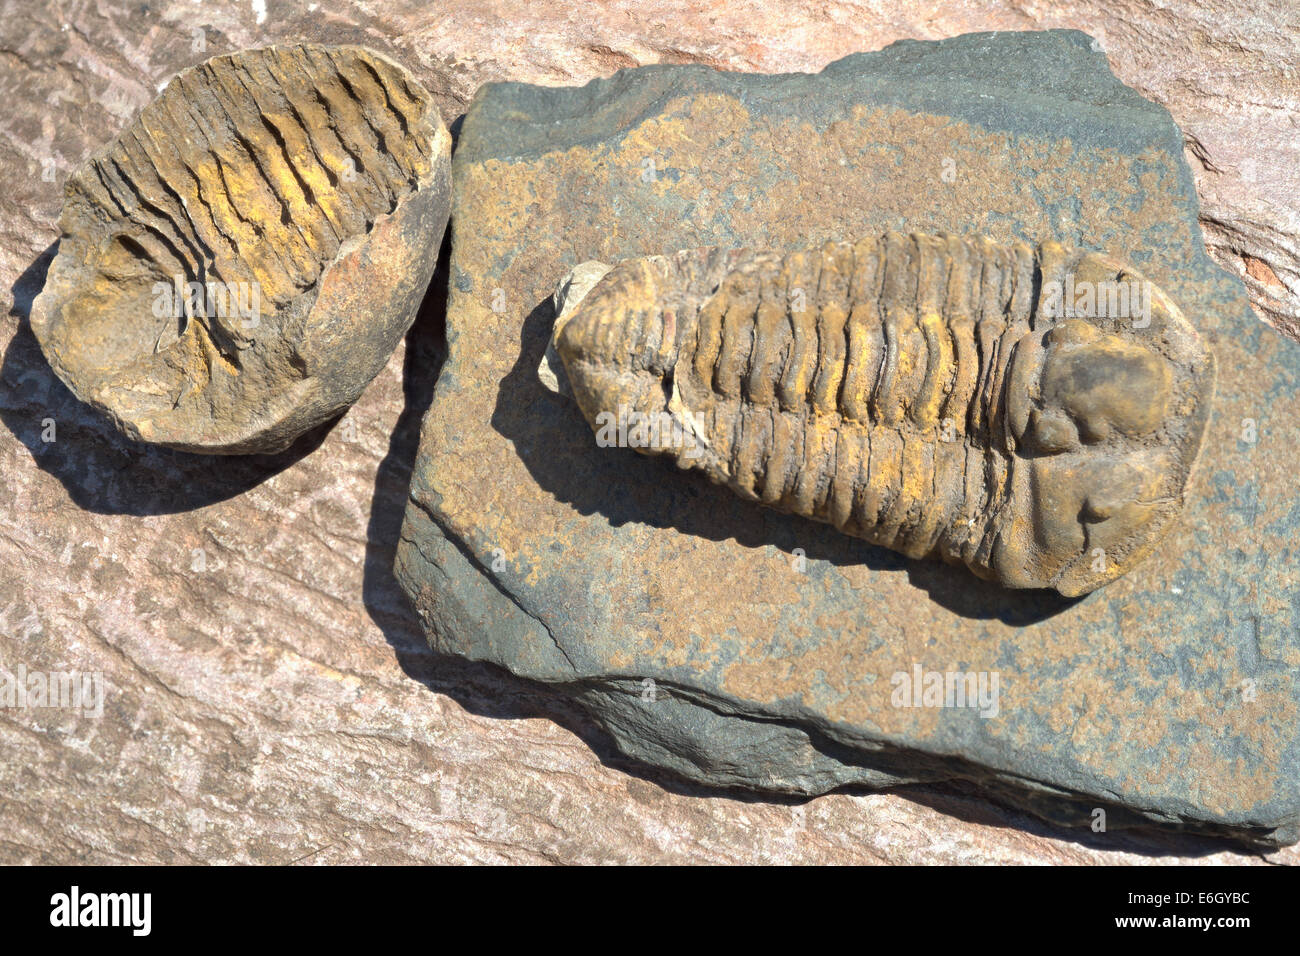 Trilobite, meaning 'three lobes' belongs to the fossil group of extinct marine arthropods that form the - Stock Image